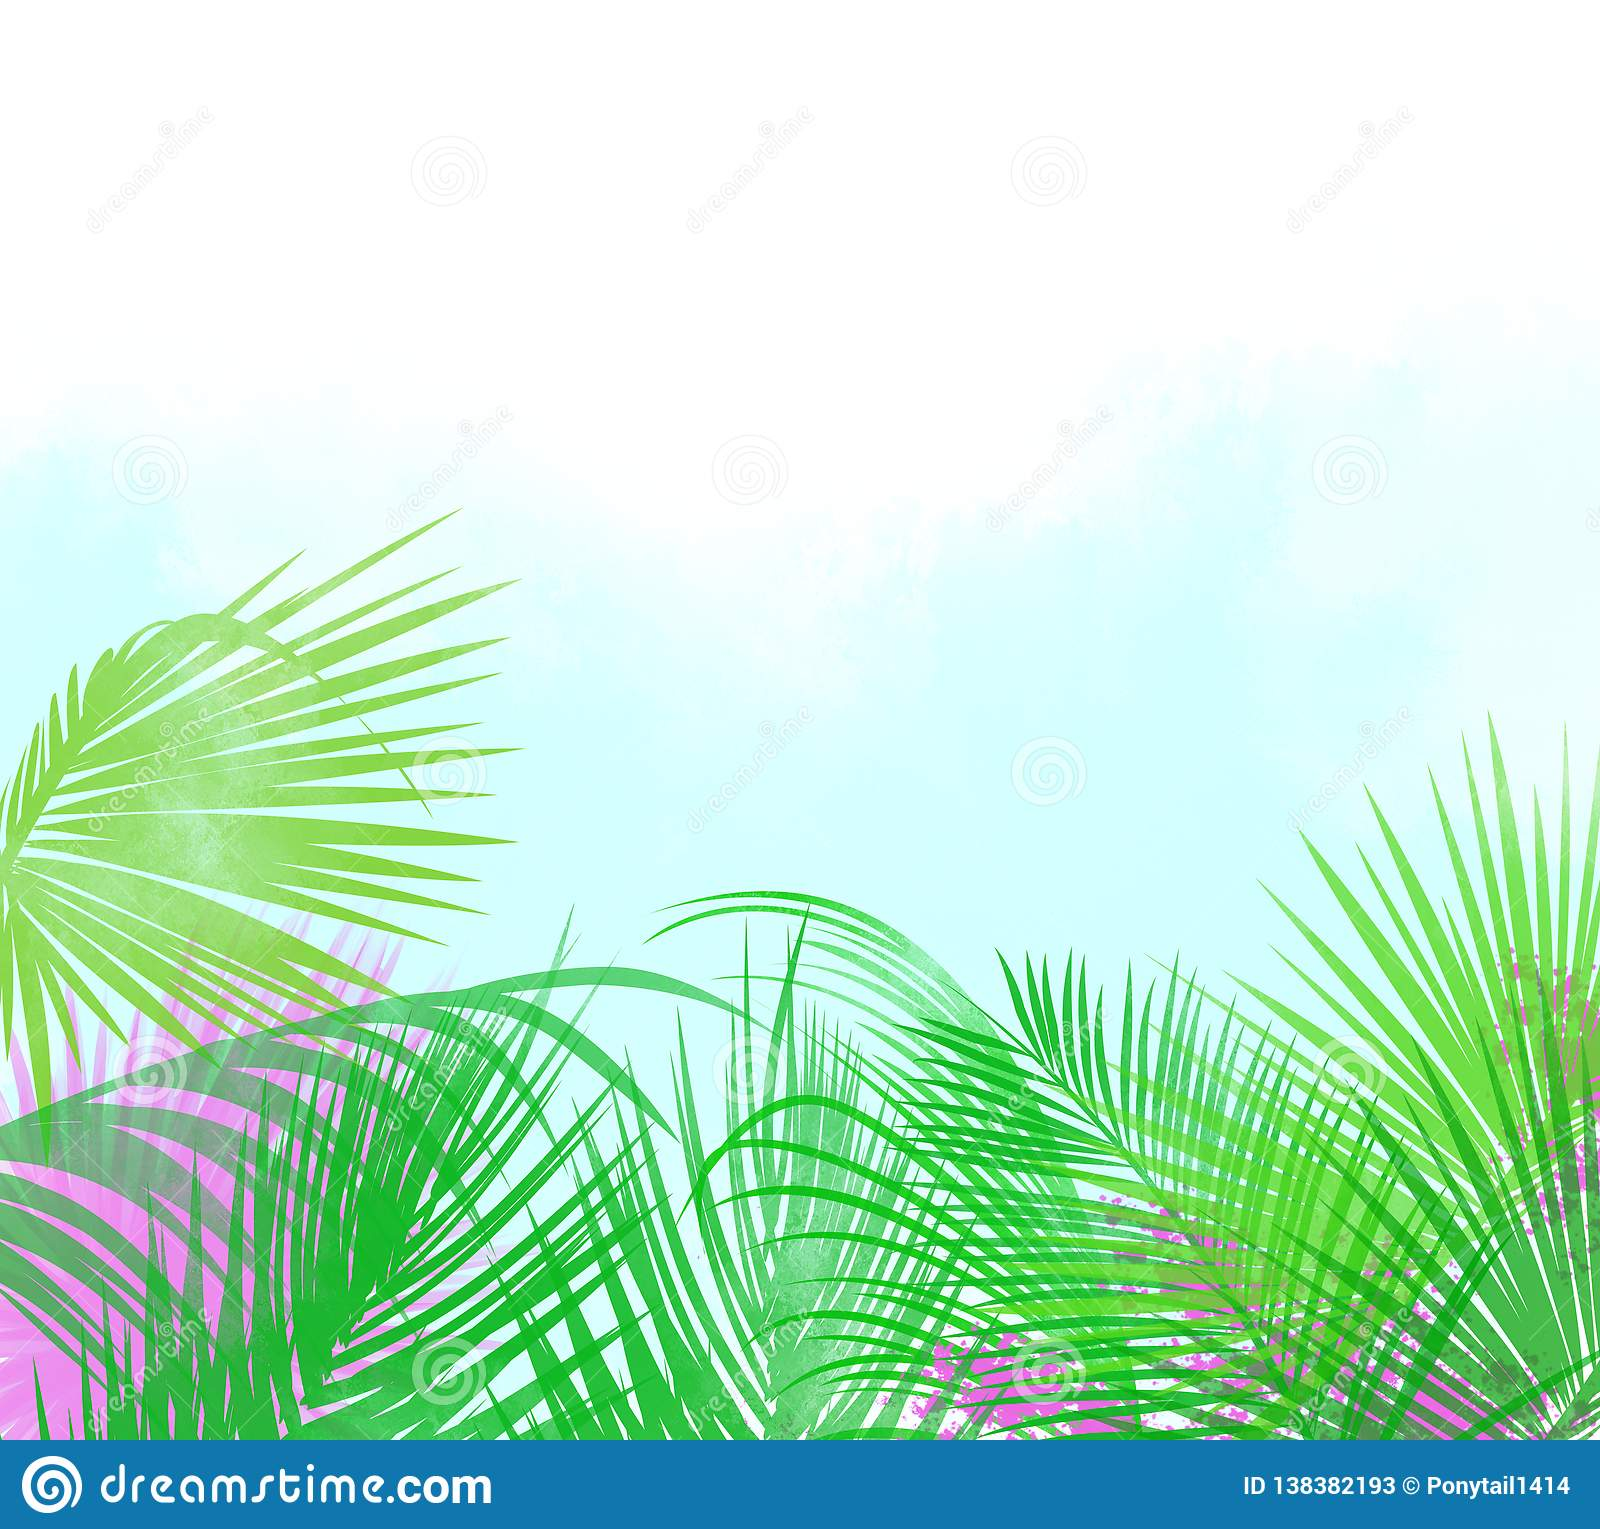 Background Or Header Of Tropical Leaves And Flowers Stock Illustration Illustration Of Beautiful Impressionistic 138382193 Watercolour clip art hand drawn. https www dreamstime com tropical palm leaves hot pink flowers background header image138382193